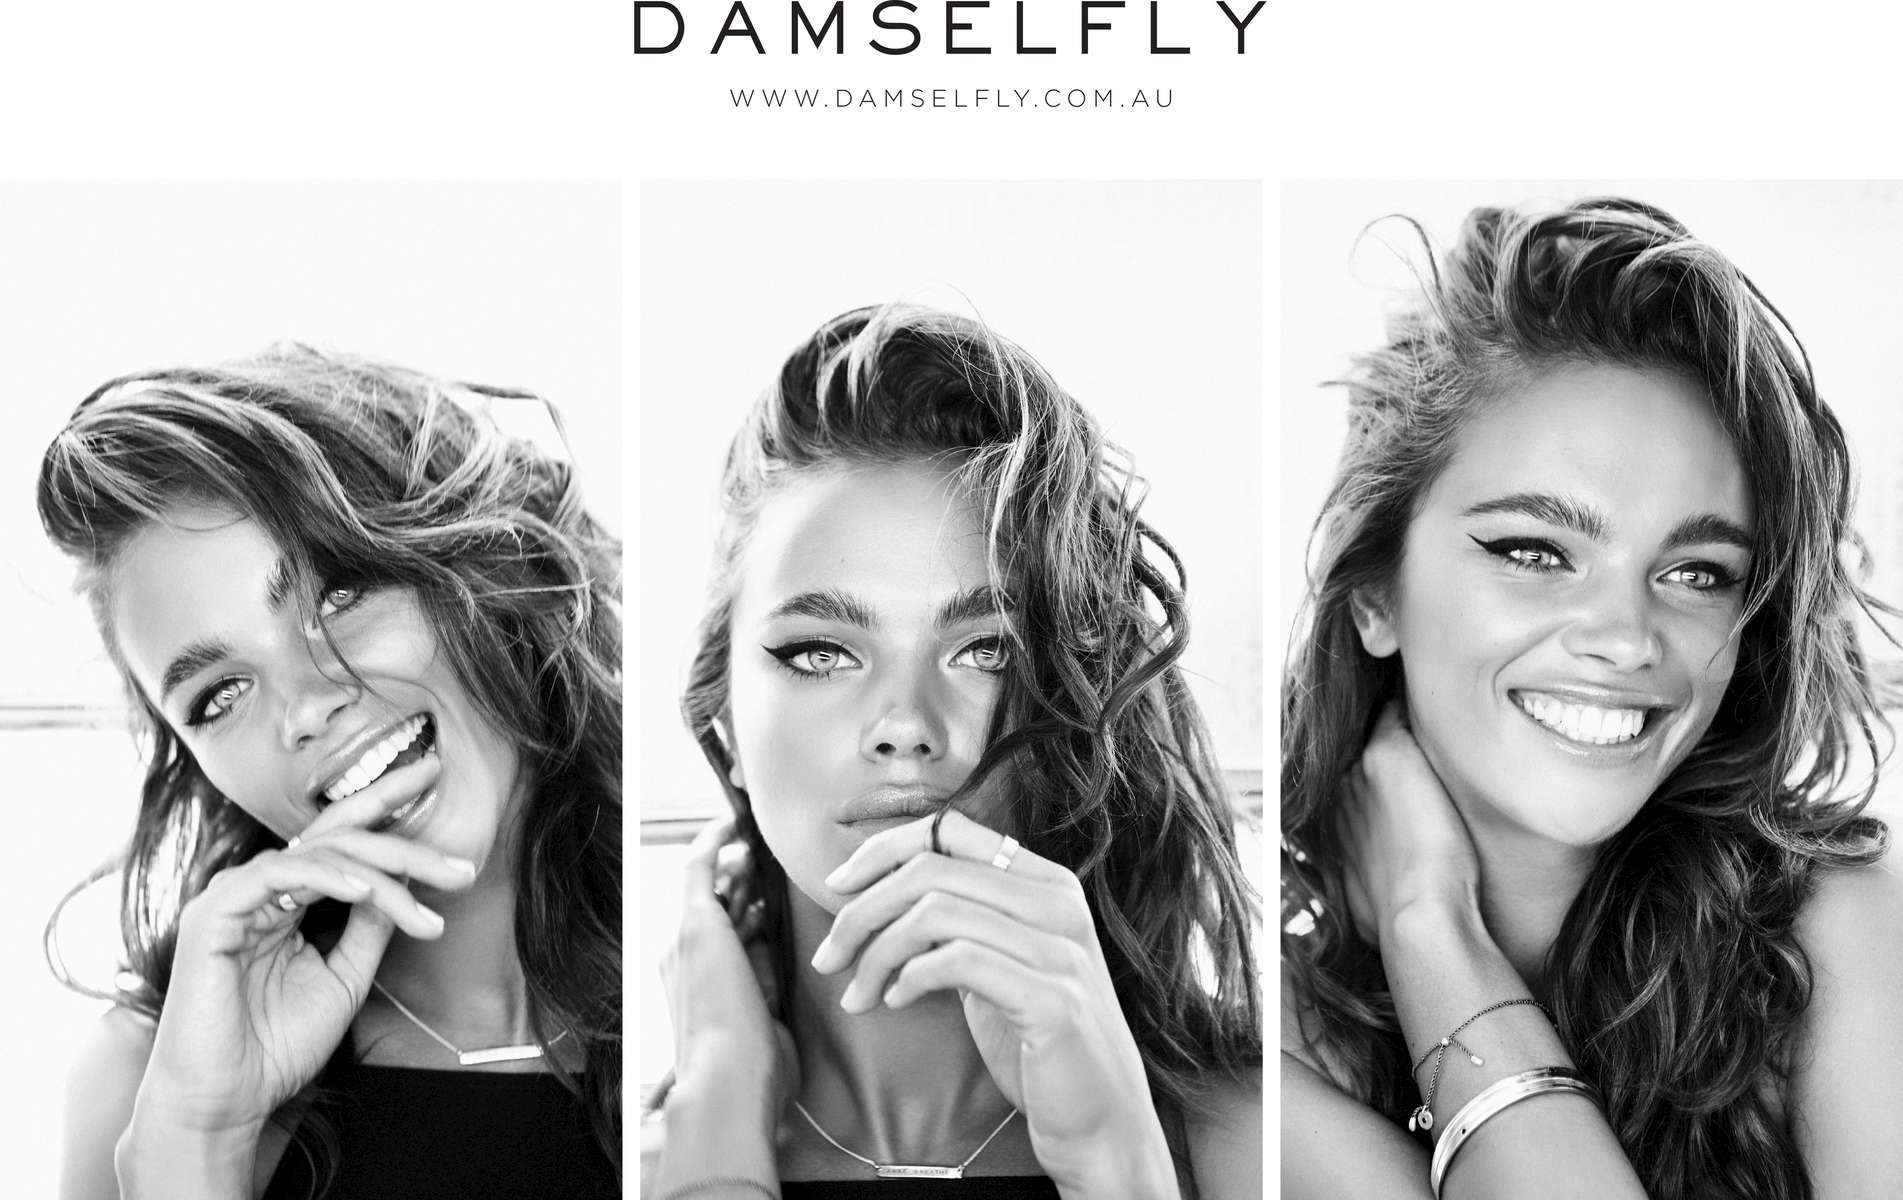 DAMSELFLY_LOOK-BOOK_Compressed-3